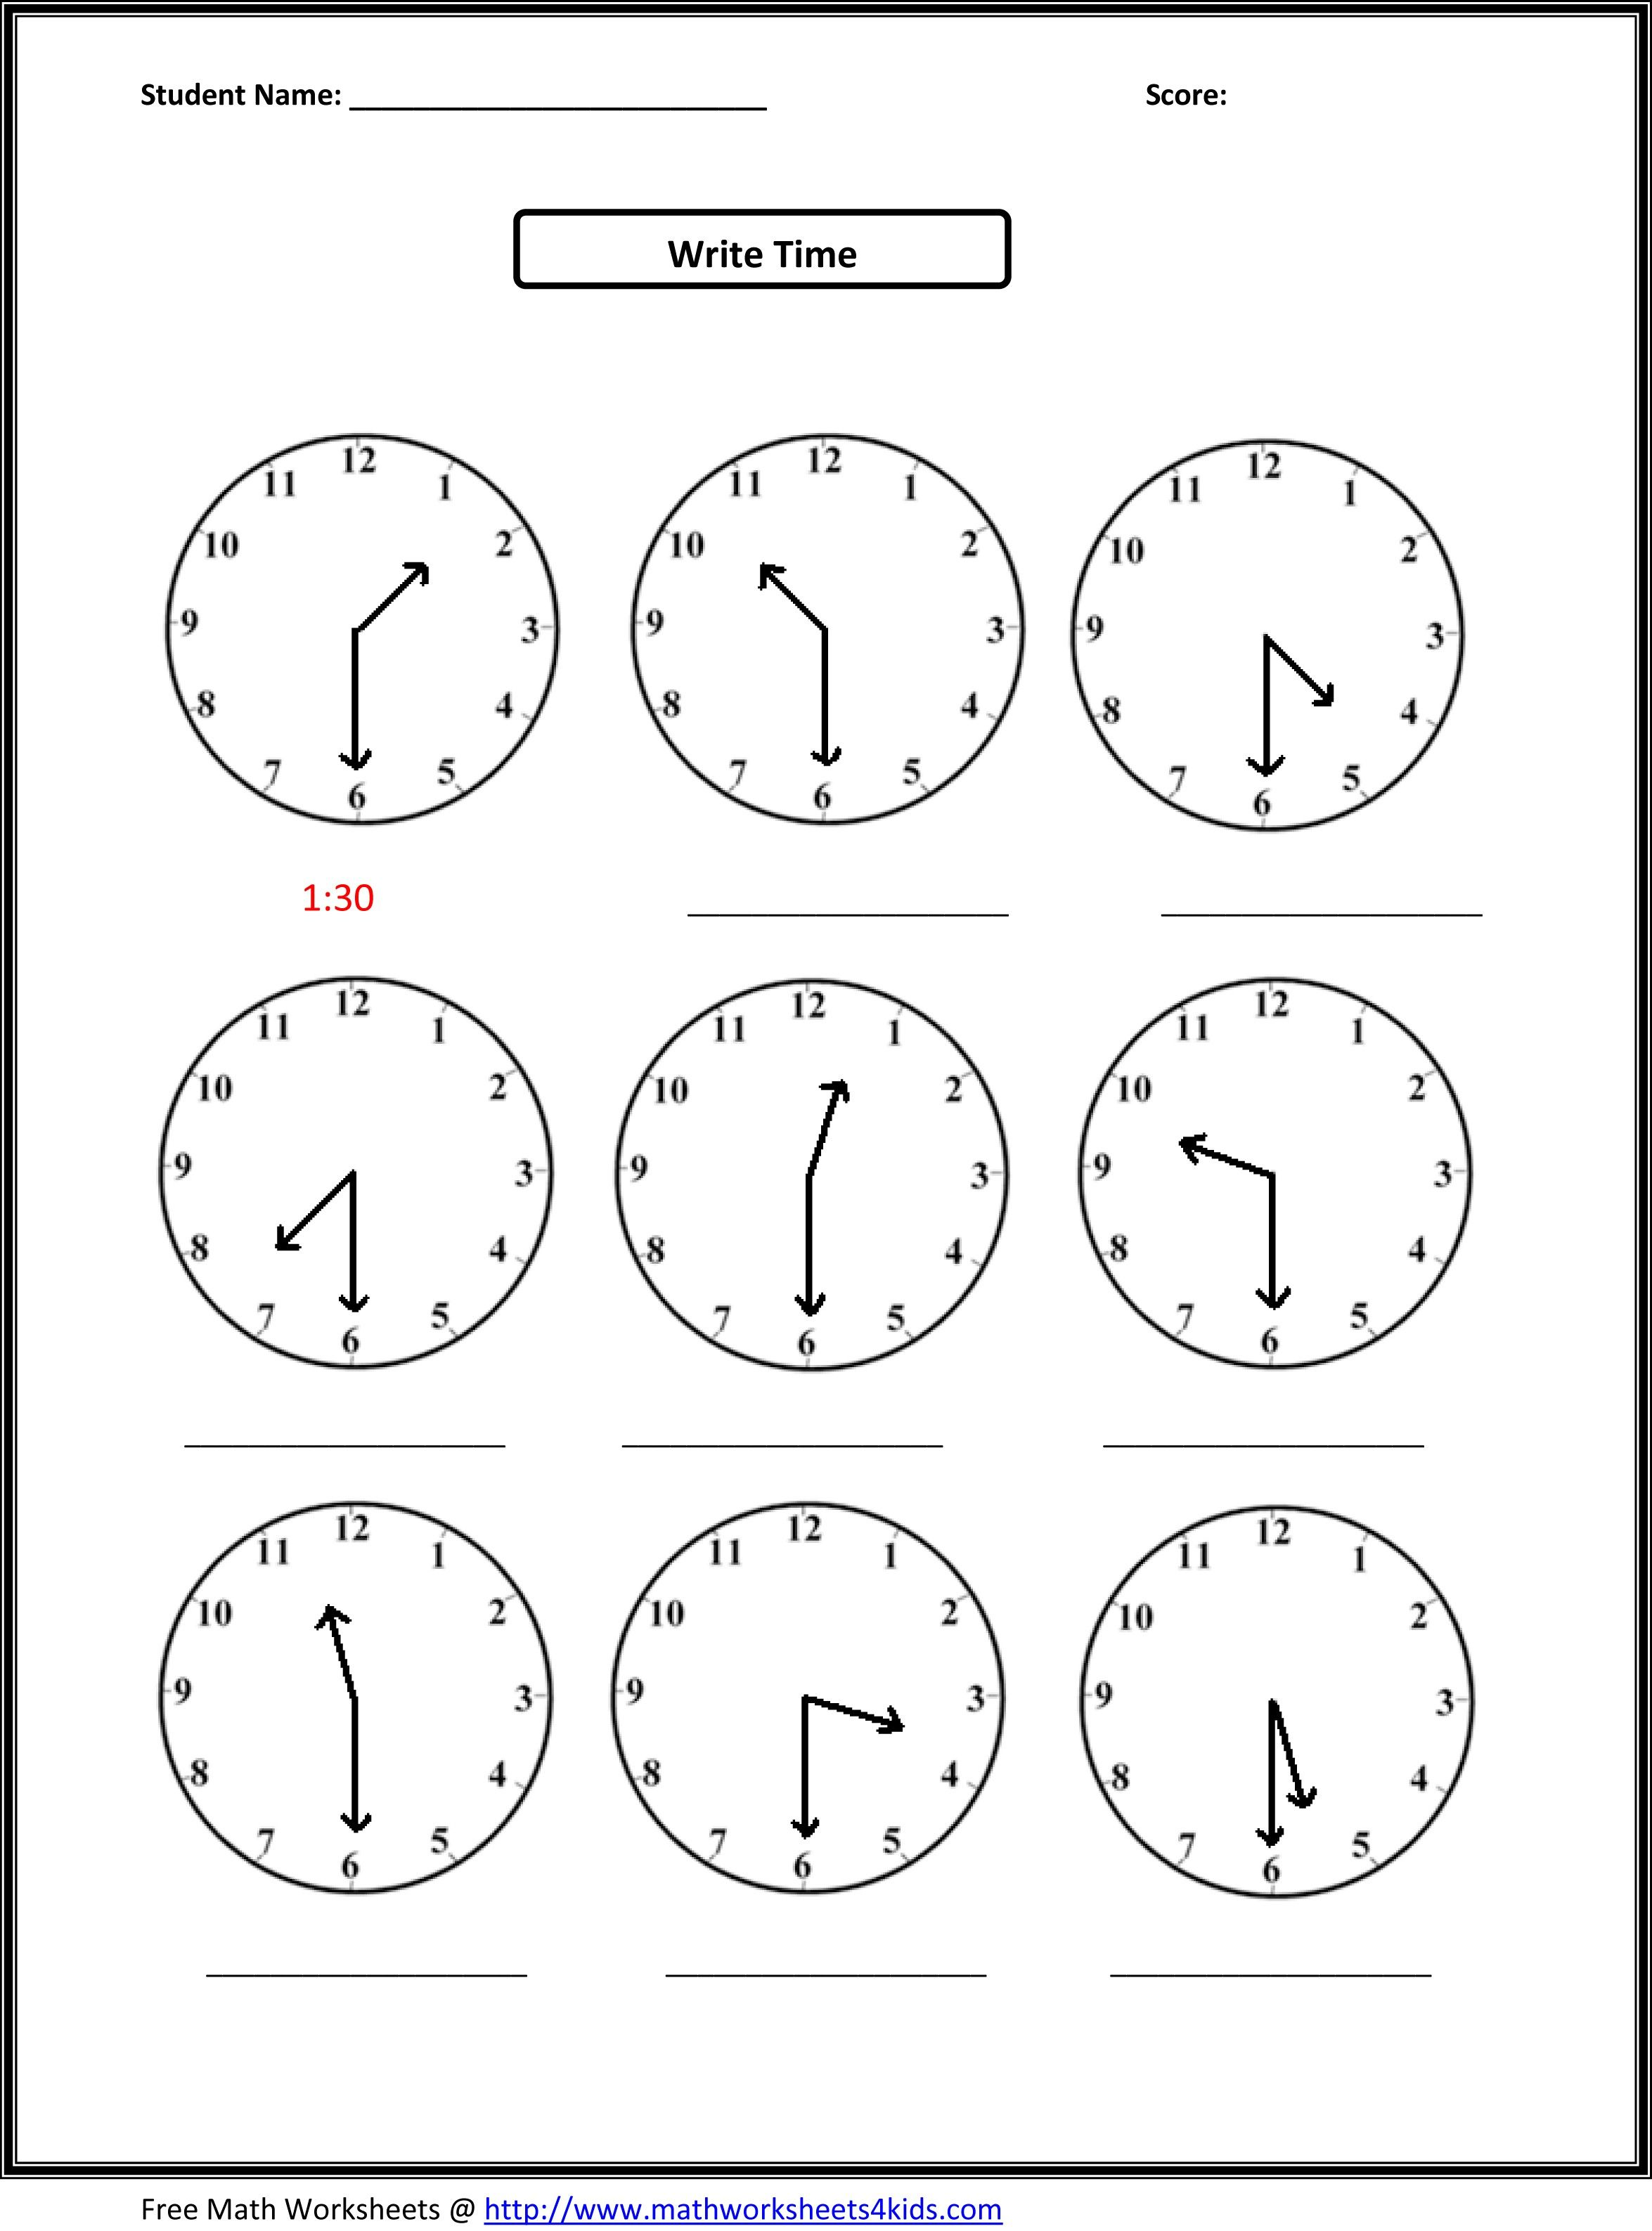 2nd Grade Free Worksheets Math | Math: Time/Measurement | 2nd grade ...